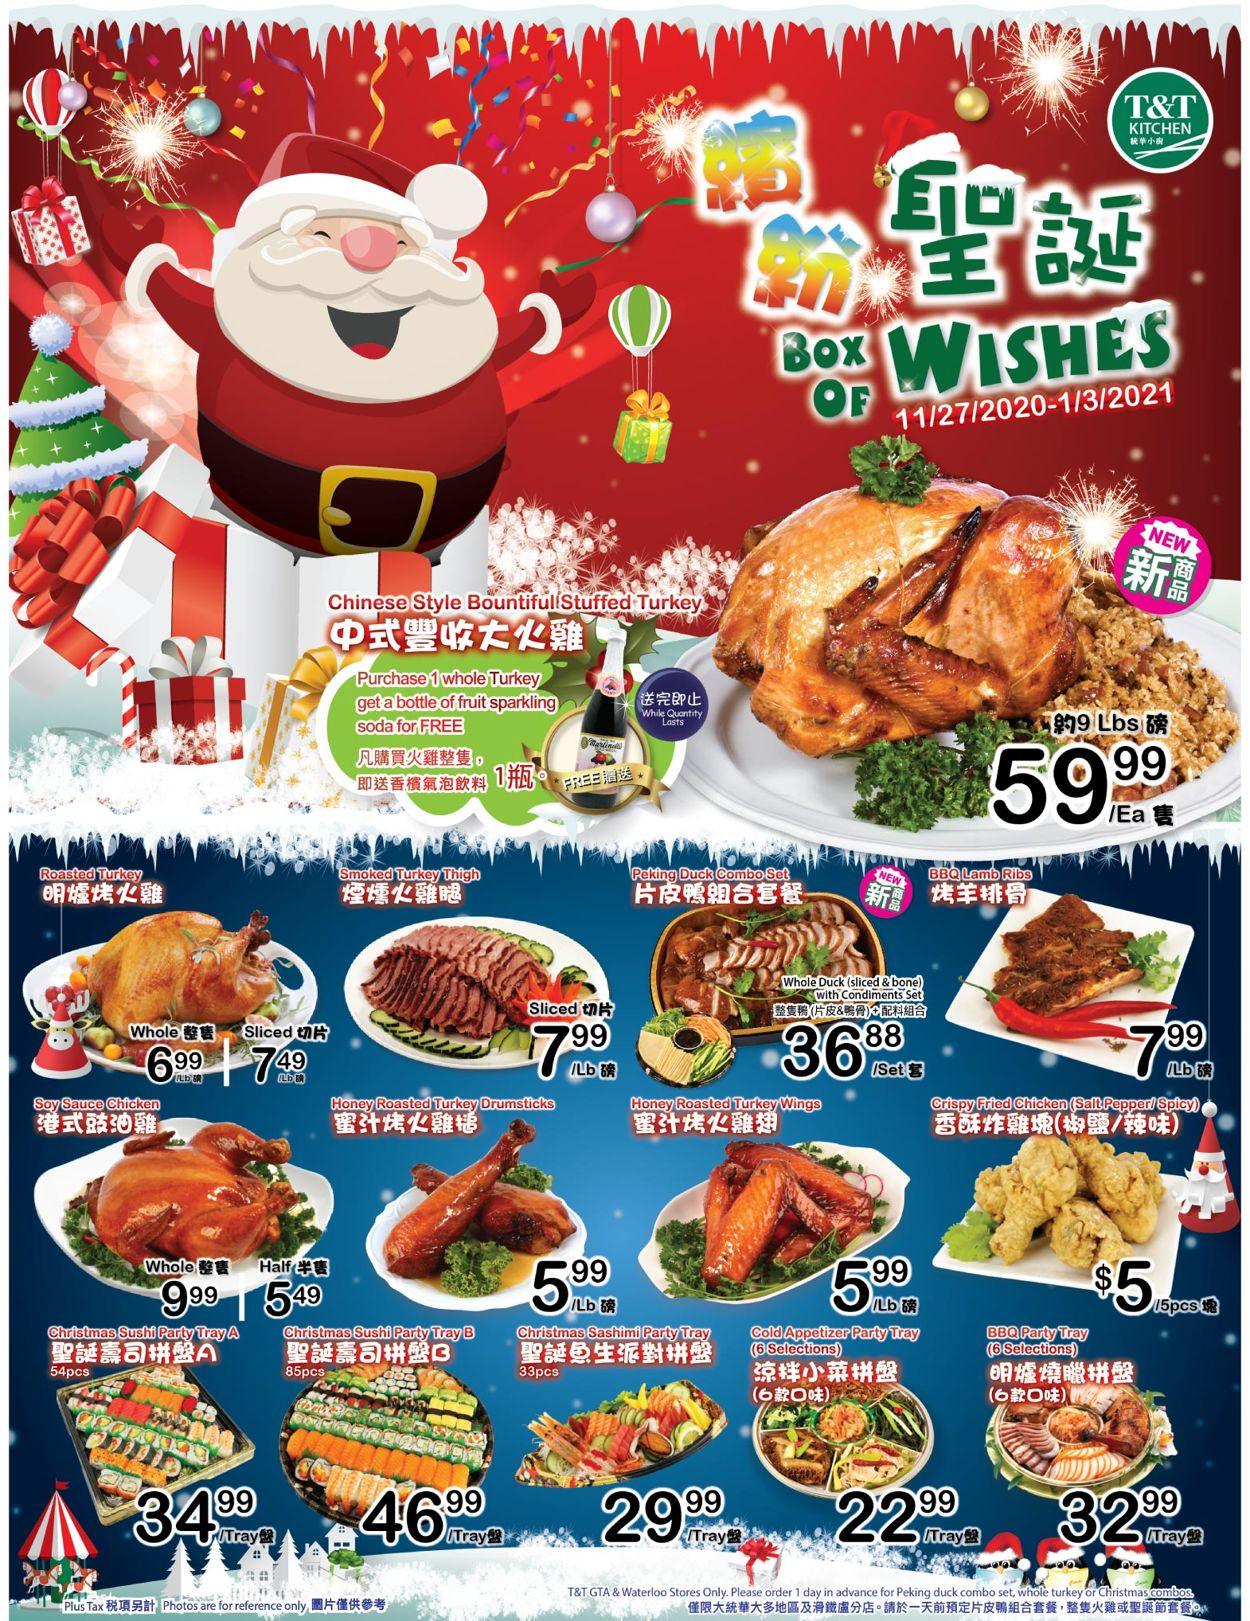 T&T Supermarket Black Friday 2020 - Greater Toronto Area Flyer - 11/27-12/03/2020 (Page 4)